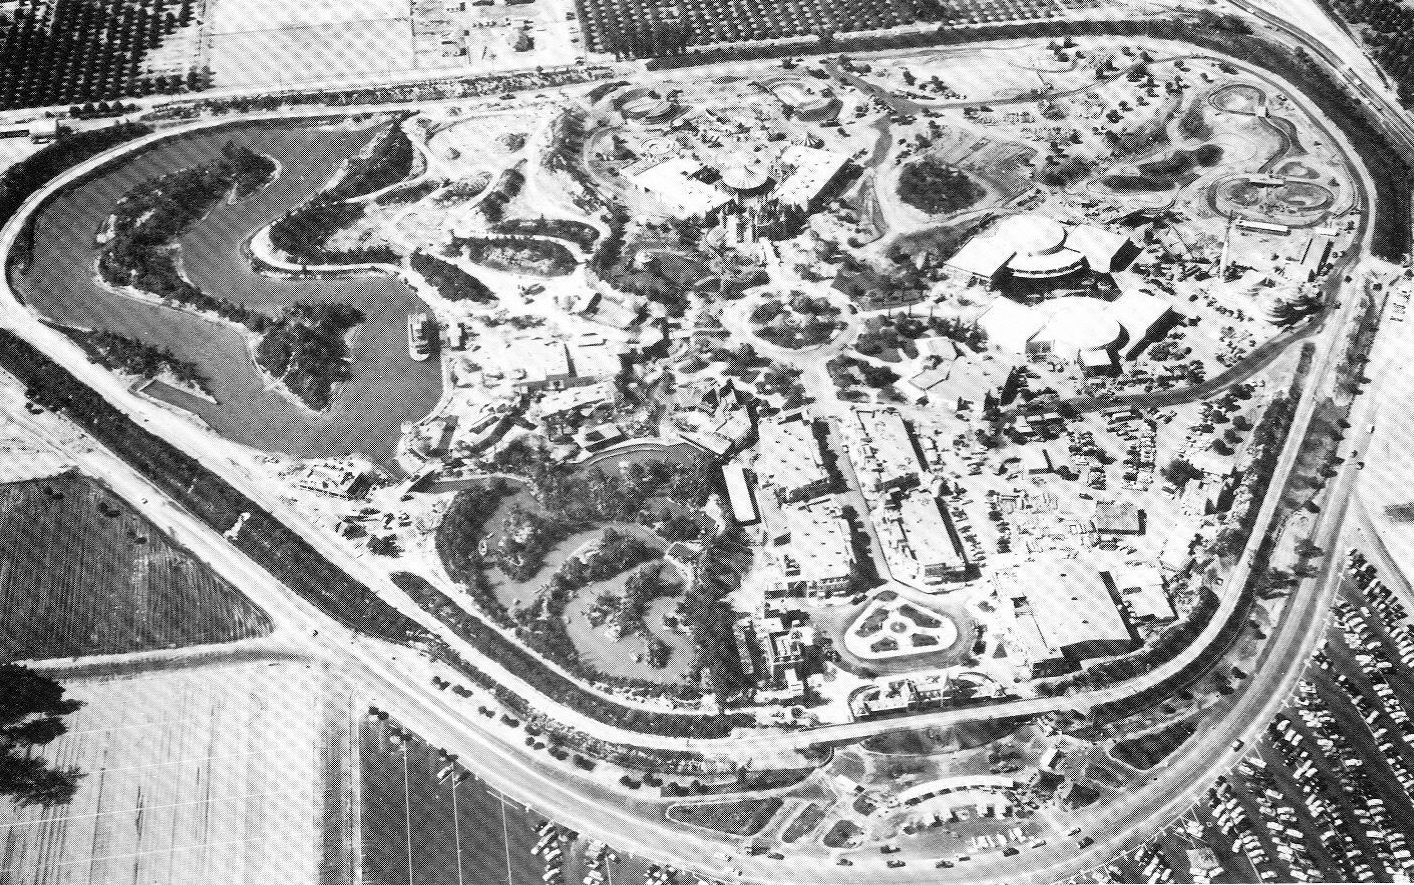 Disneyland In The Early Years: Walt Disney's Vision a Reality